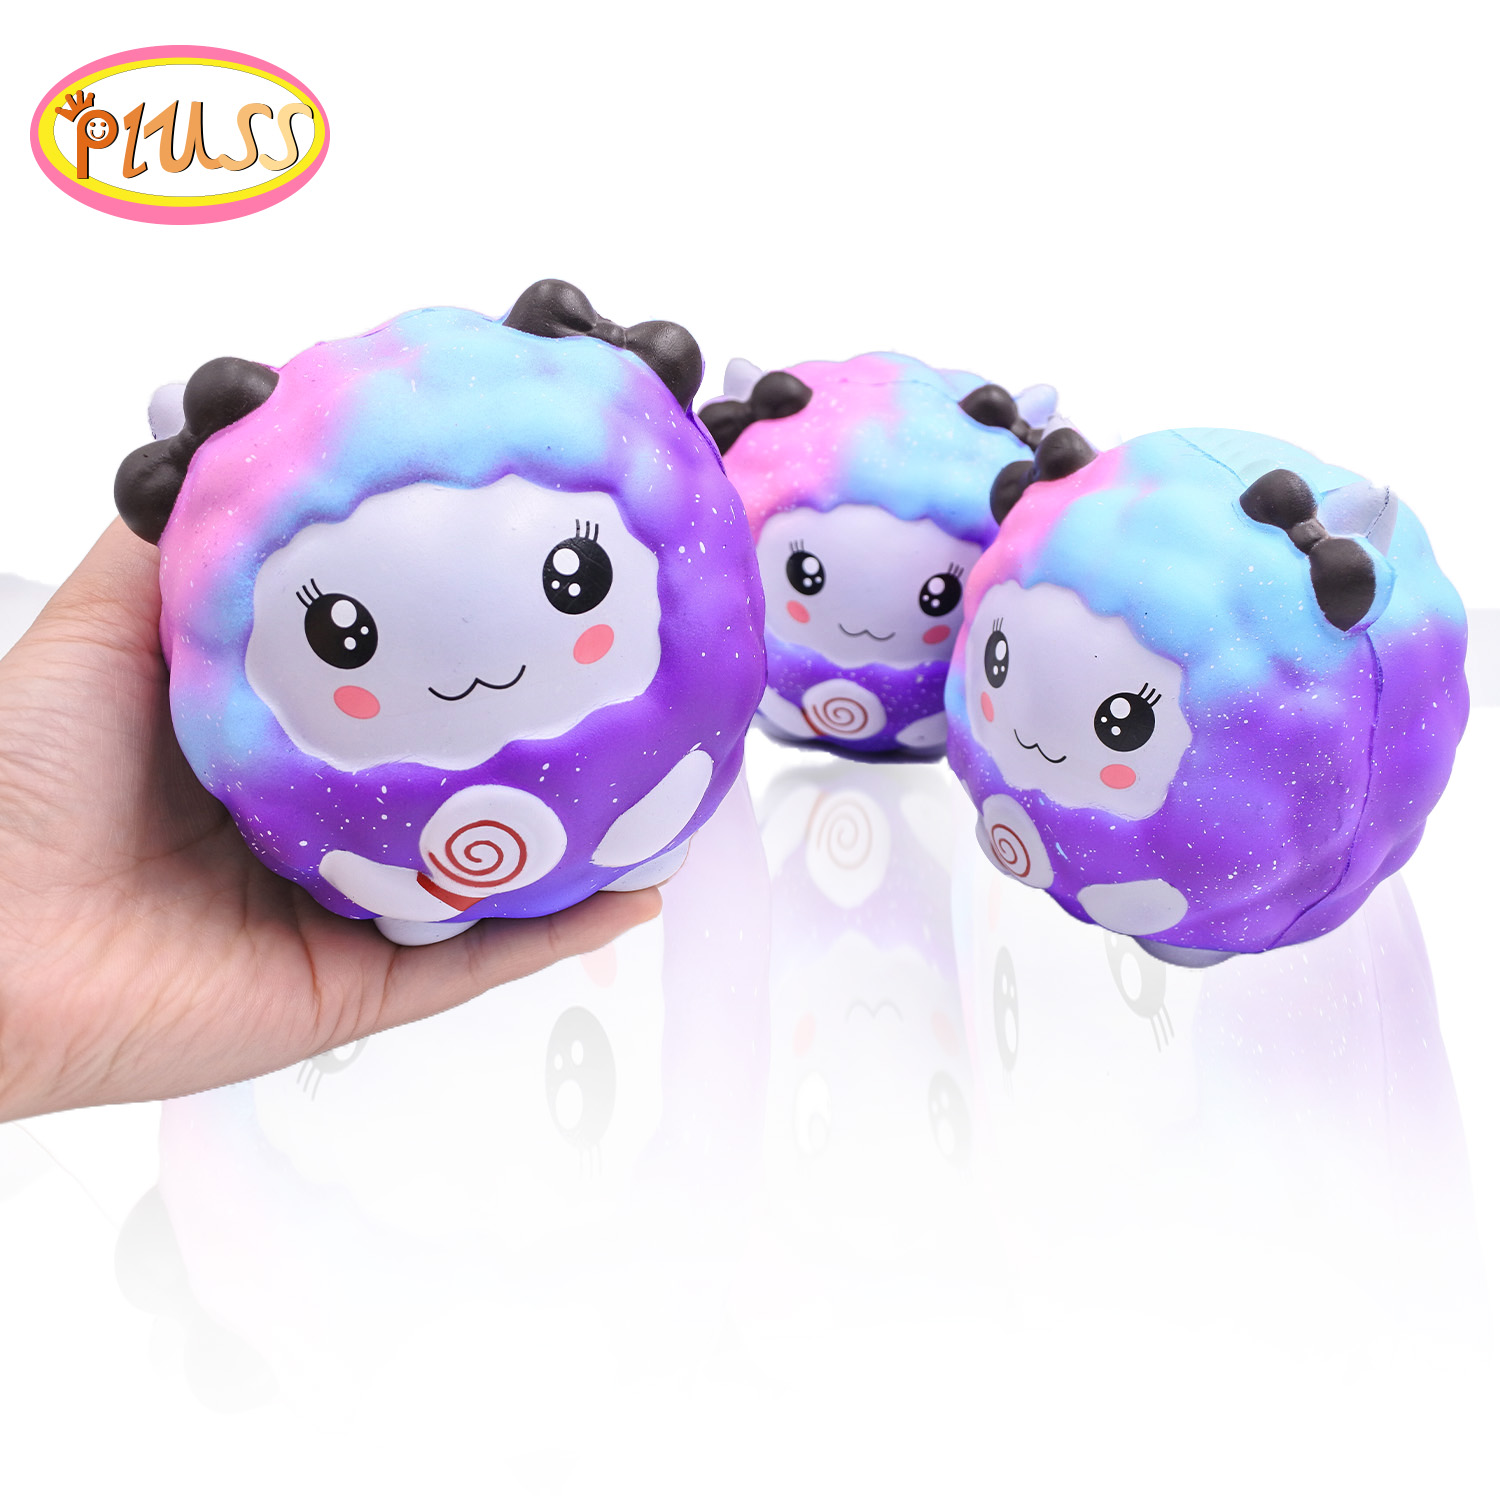 Jumbo Galaxy Sheep Squishy Kawaii Animal Slow Rising Soft Squeeze Toy Simulation Bread Scent Stress Relief Fun For Kid Girl Gift